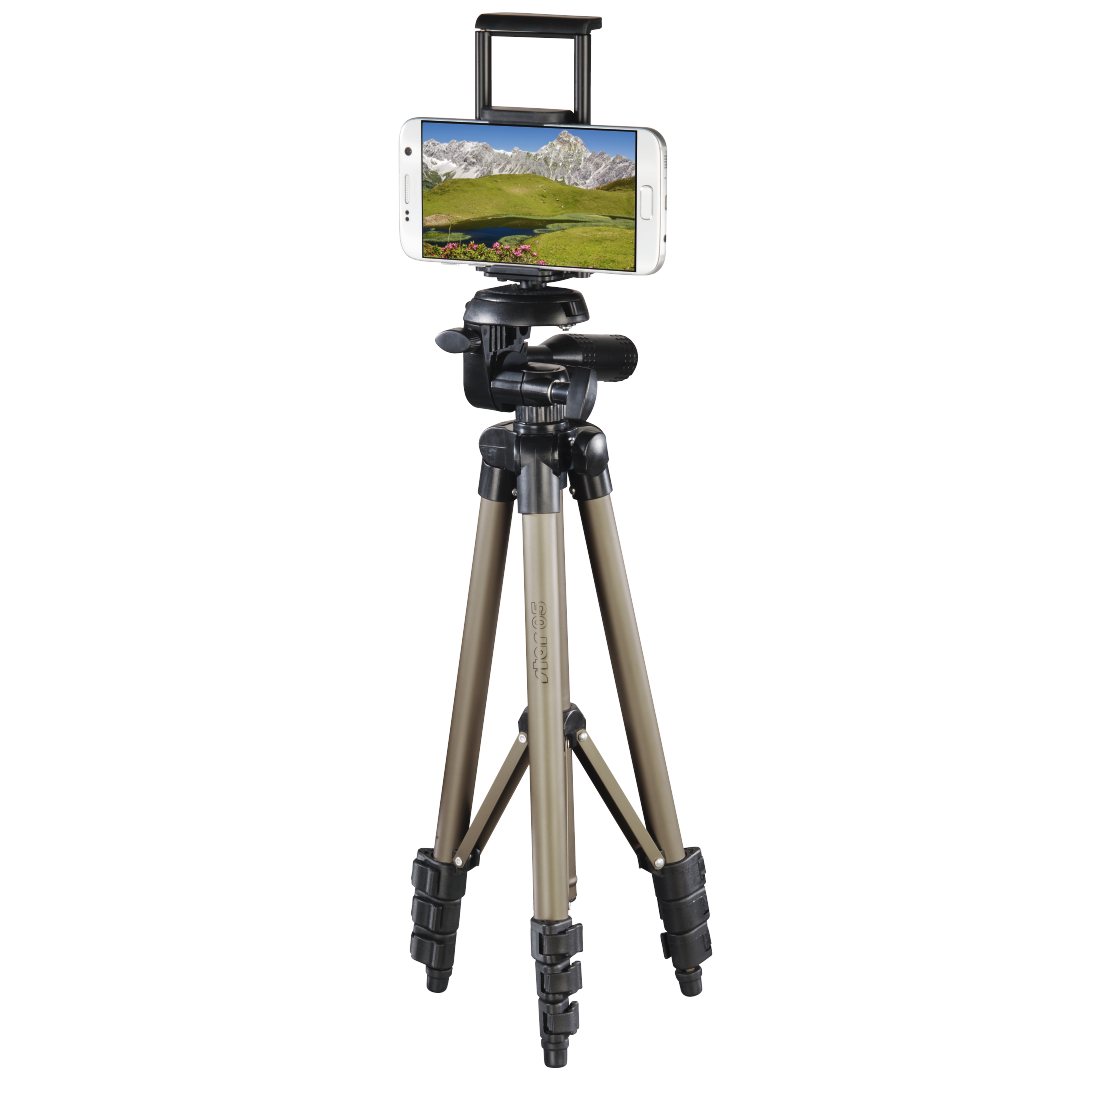 abx High-Res Image - Hama, Tripod for Smartphone/Tablet, 106 - 3D